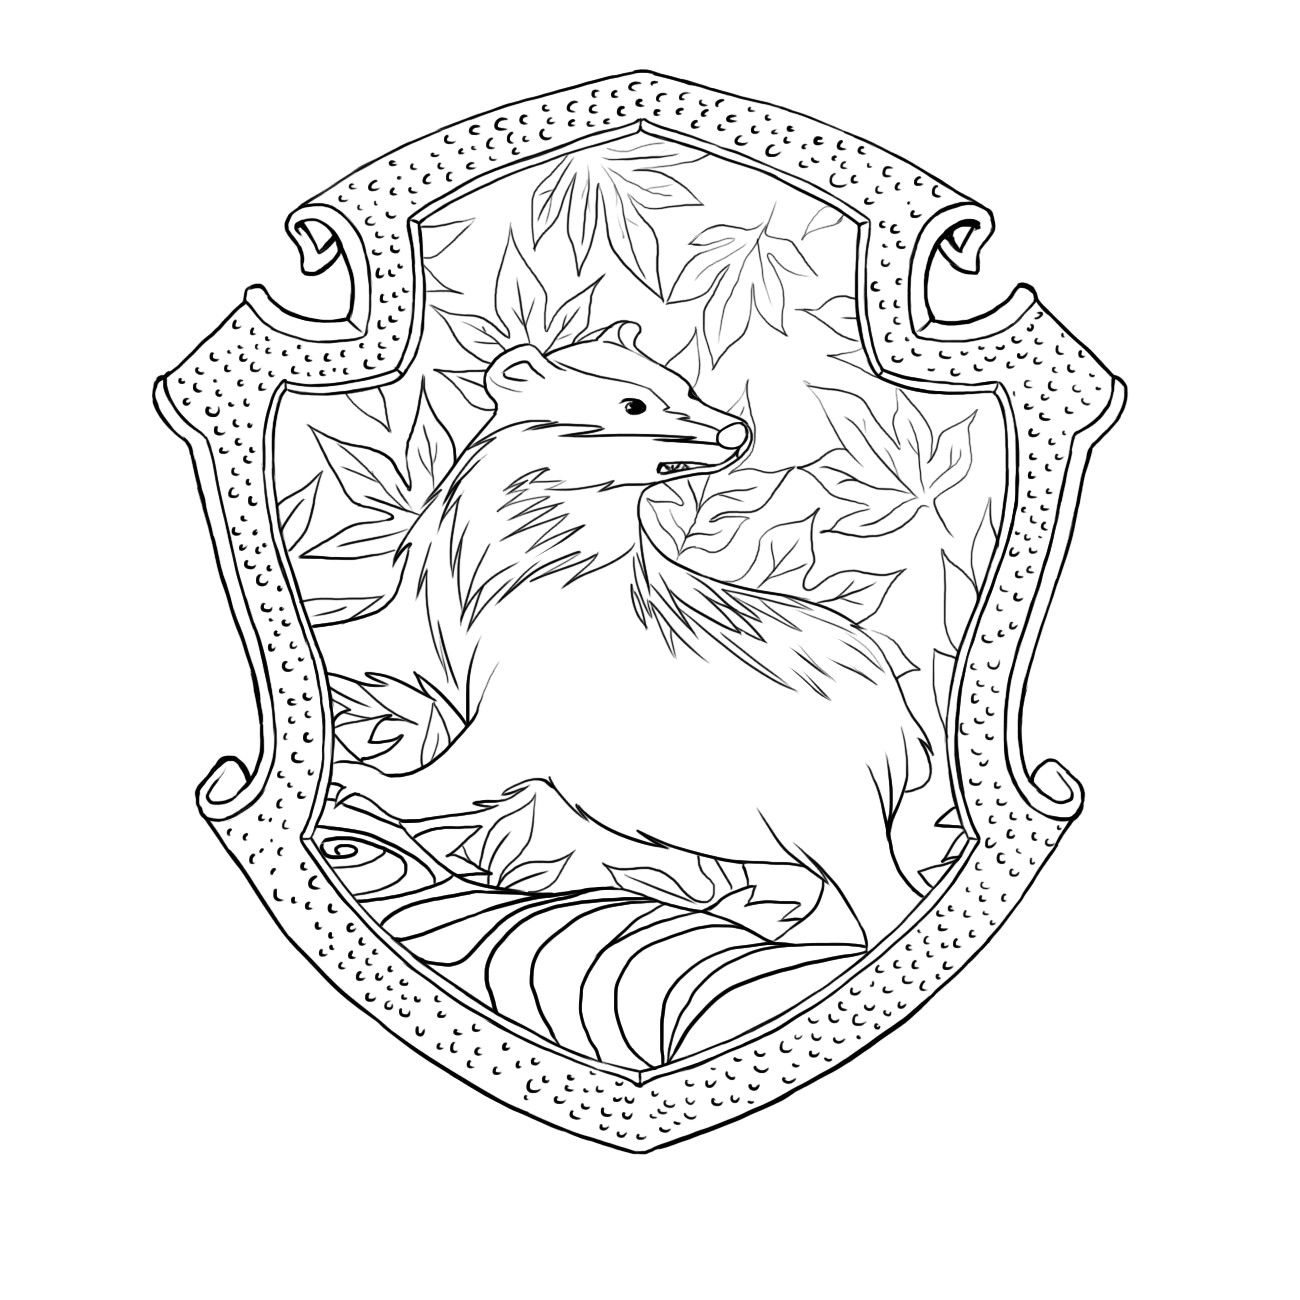 Ravenclaw Crest Coloring Pages Thekindproject Fancy Hufflepuff